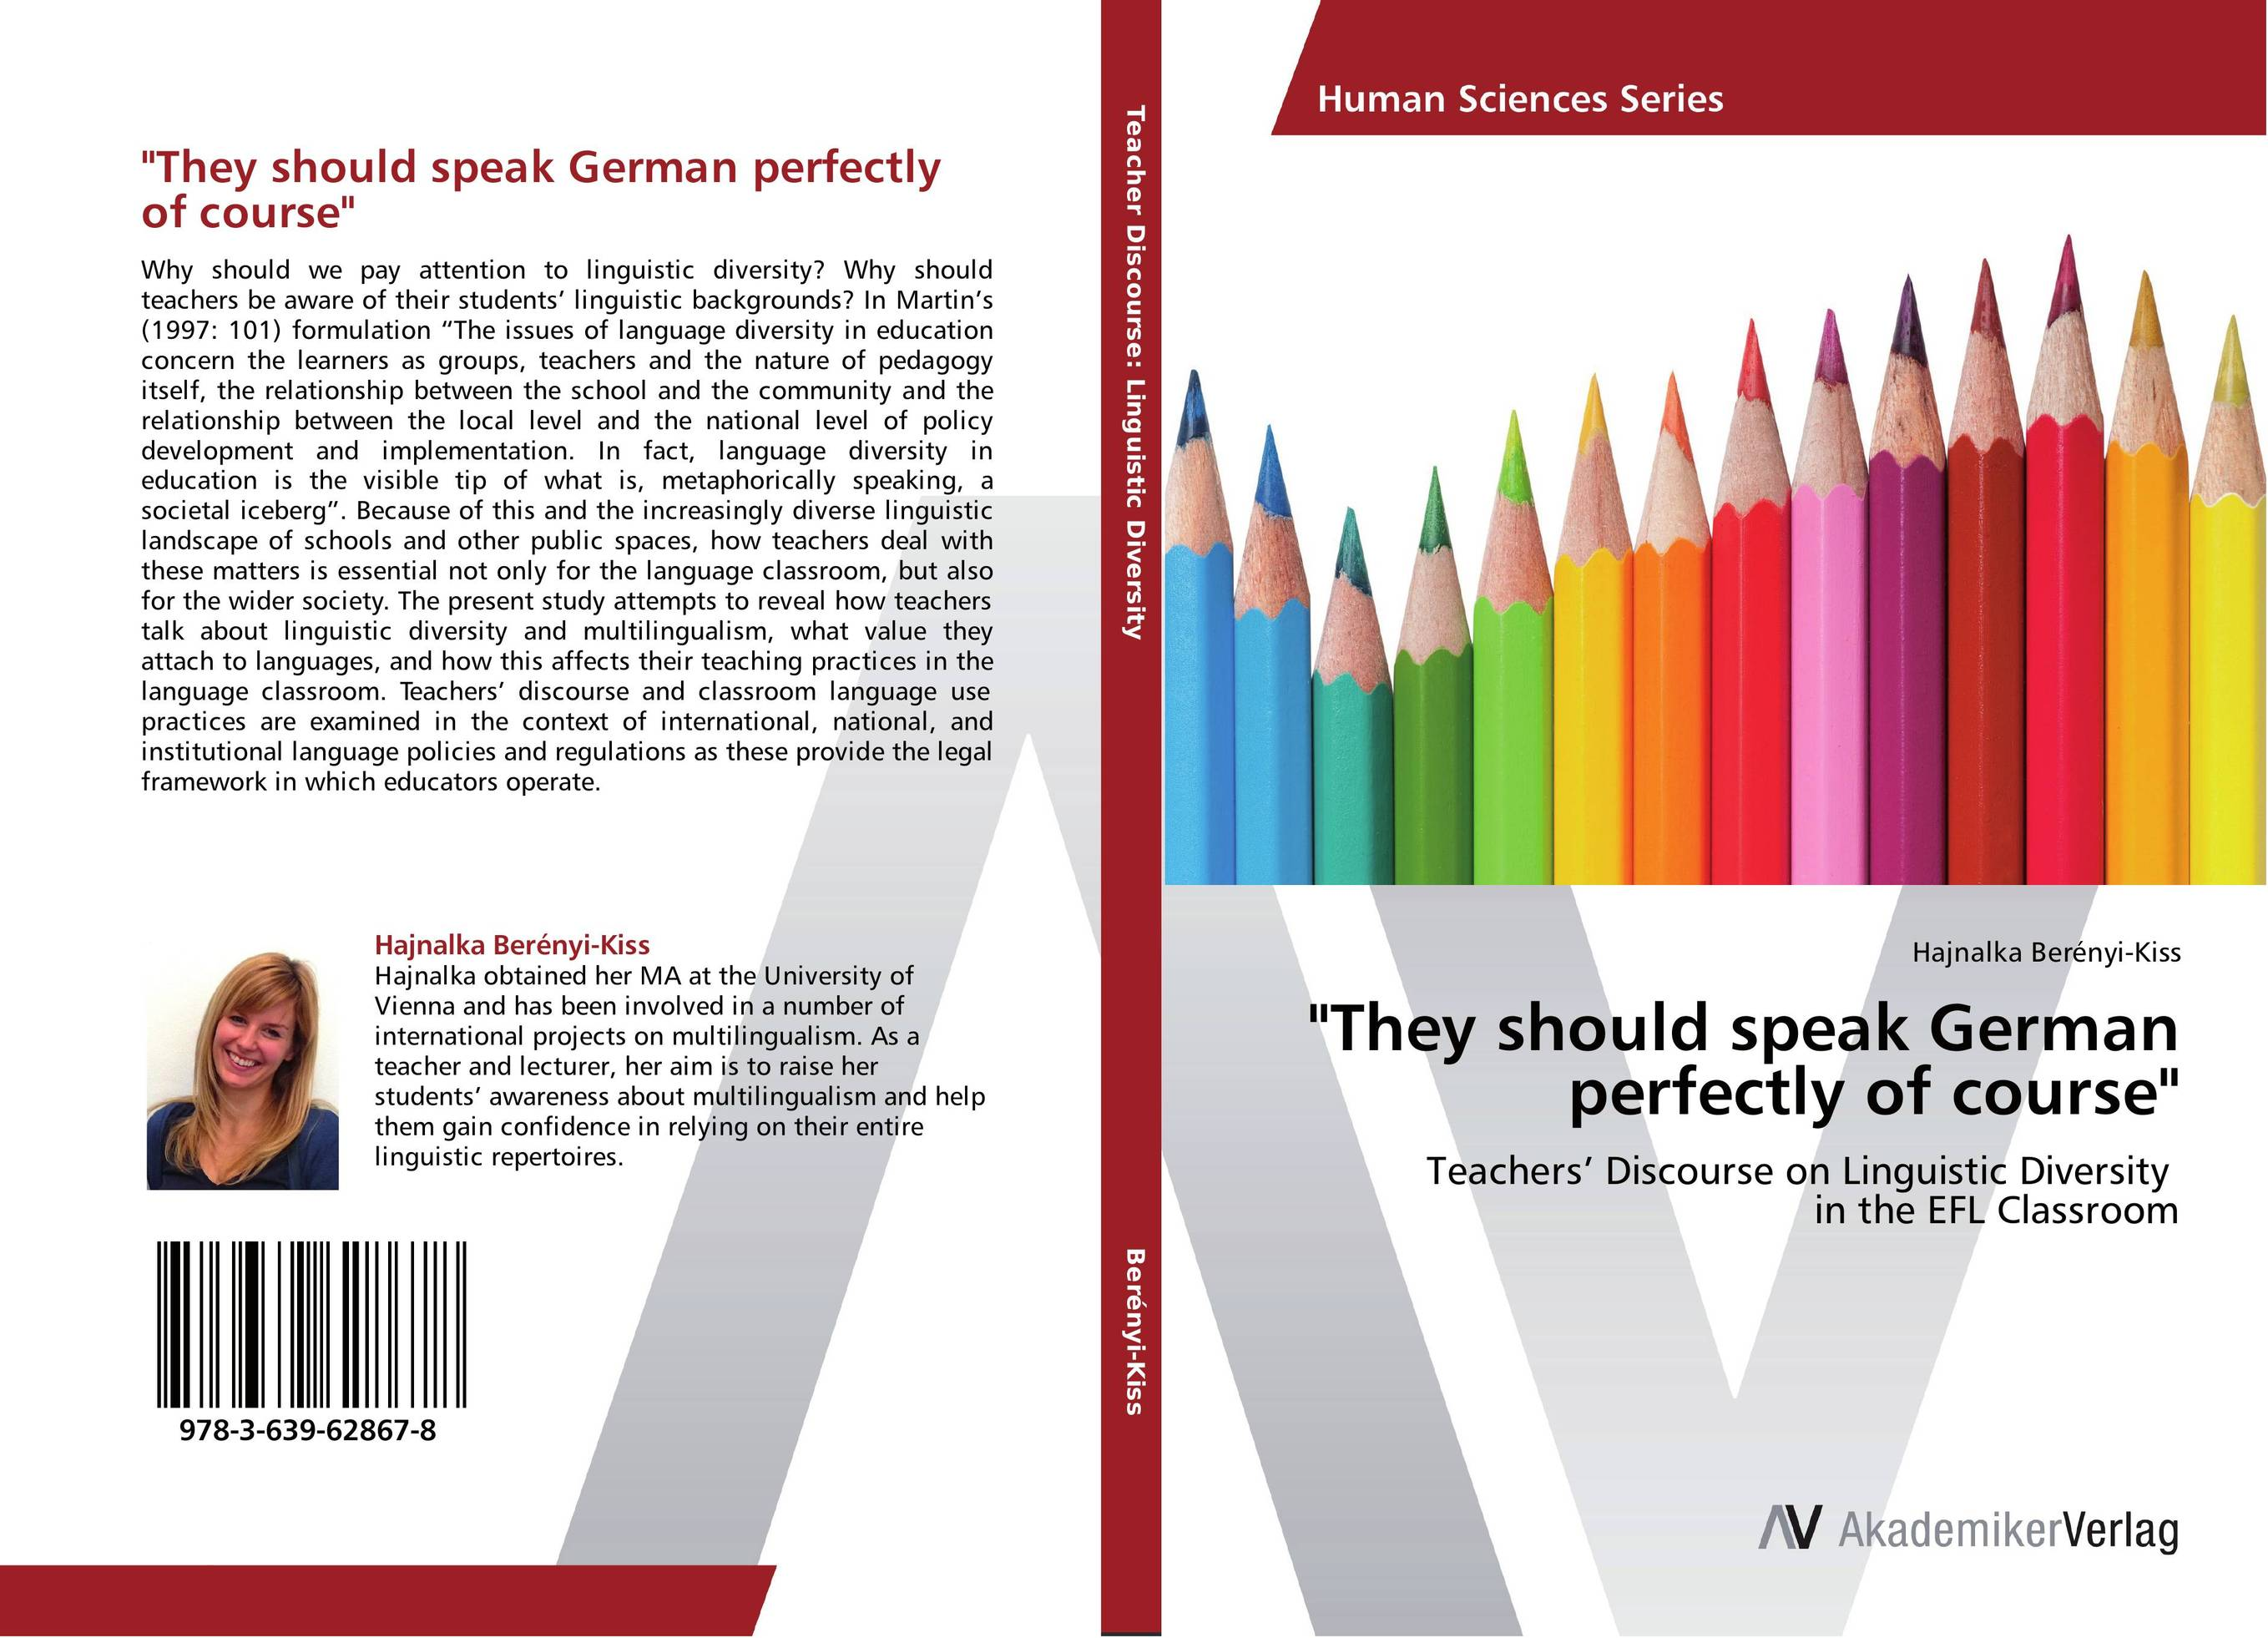 They should speak German perfectly of course the relationship between dementias and language disorders